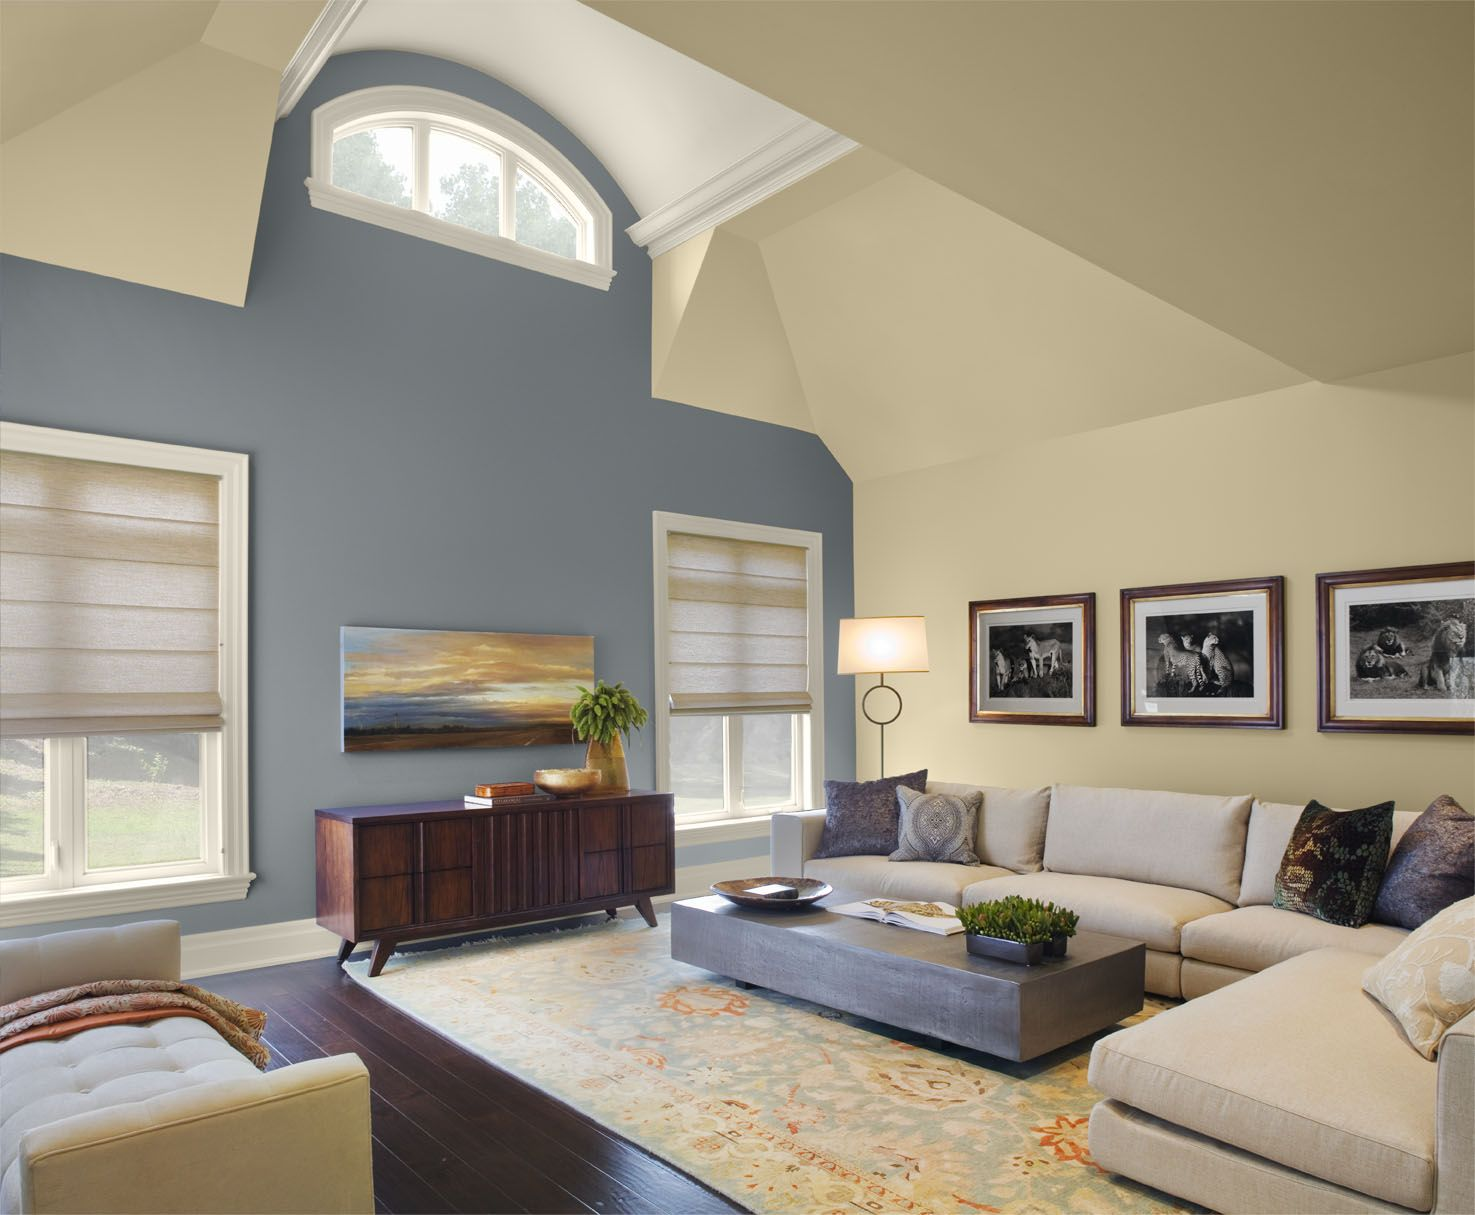 Of Living Room Paint Colors A Living Room 1 Nopillow V6 Arch Paint Colors Ballet And